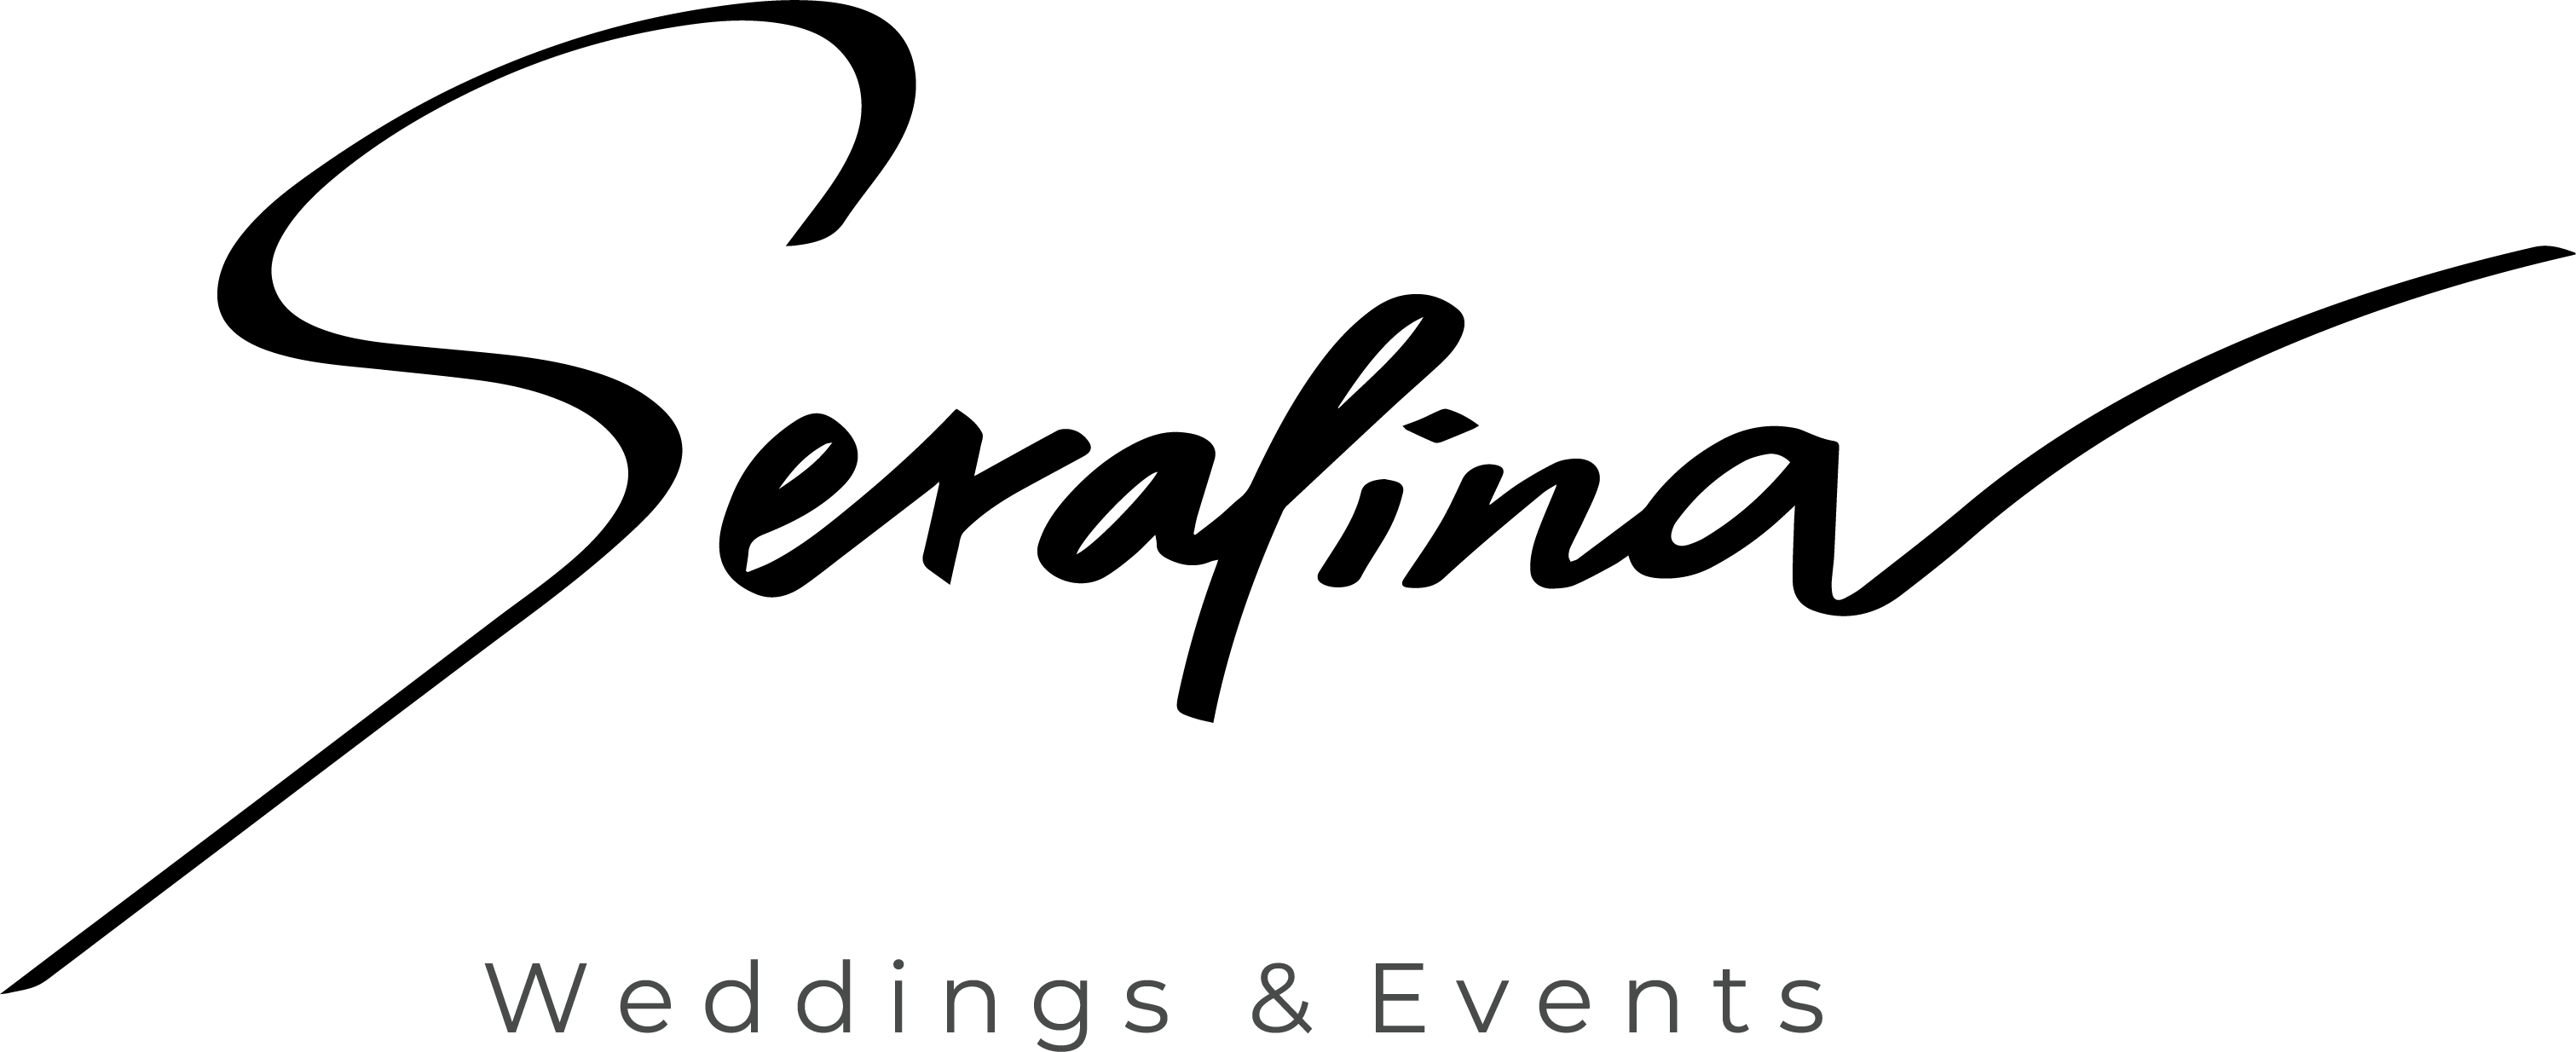 Serafina Weddings